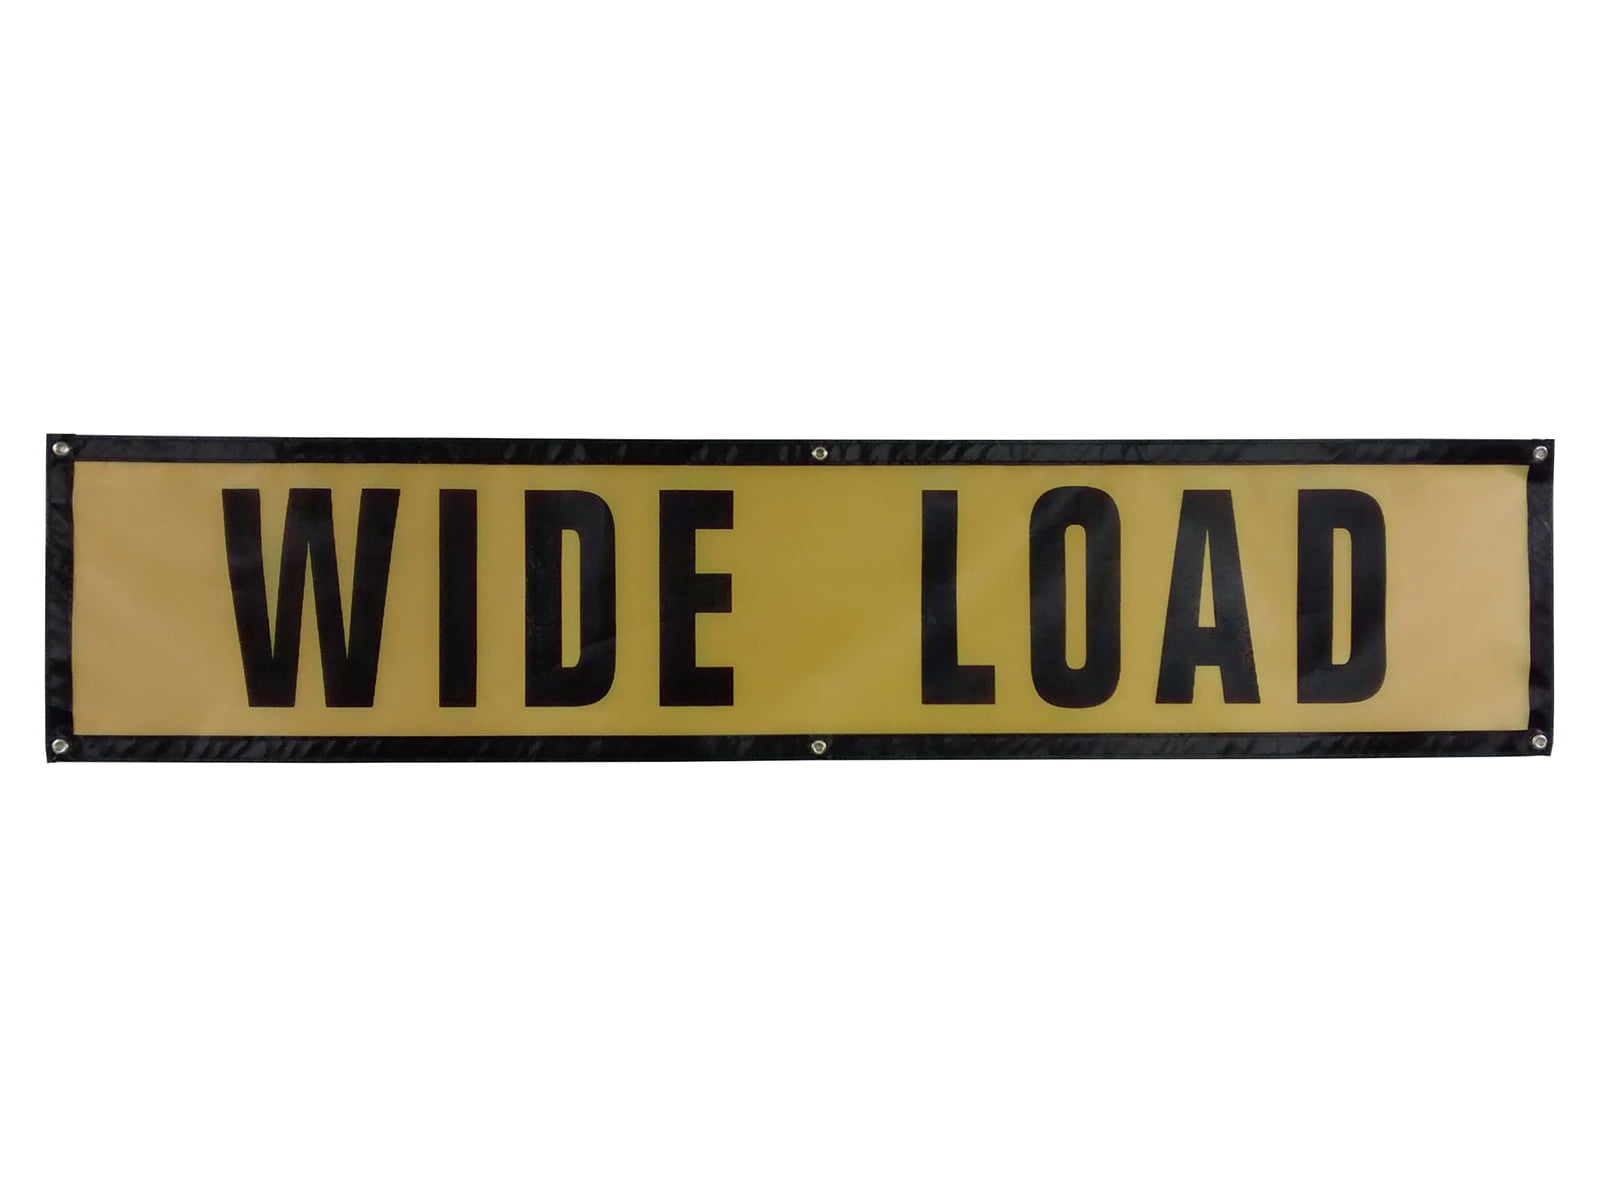 Wide Load Sign >> Grommet Wide Load Sign Oversize Warning Products